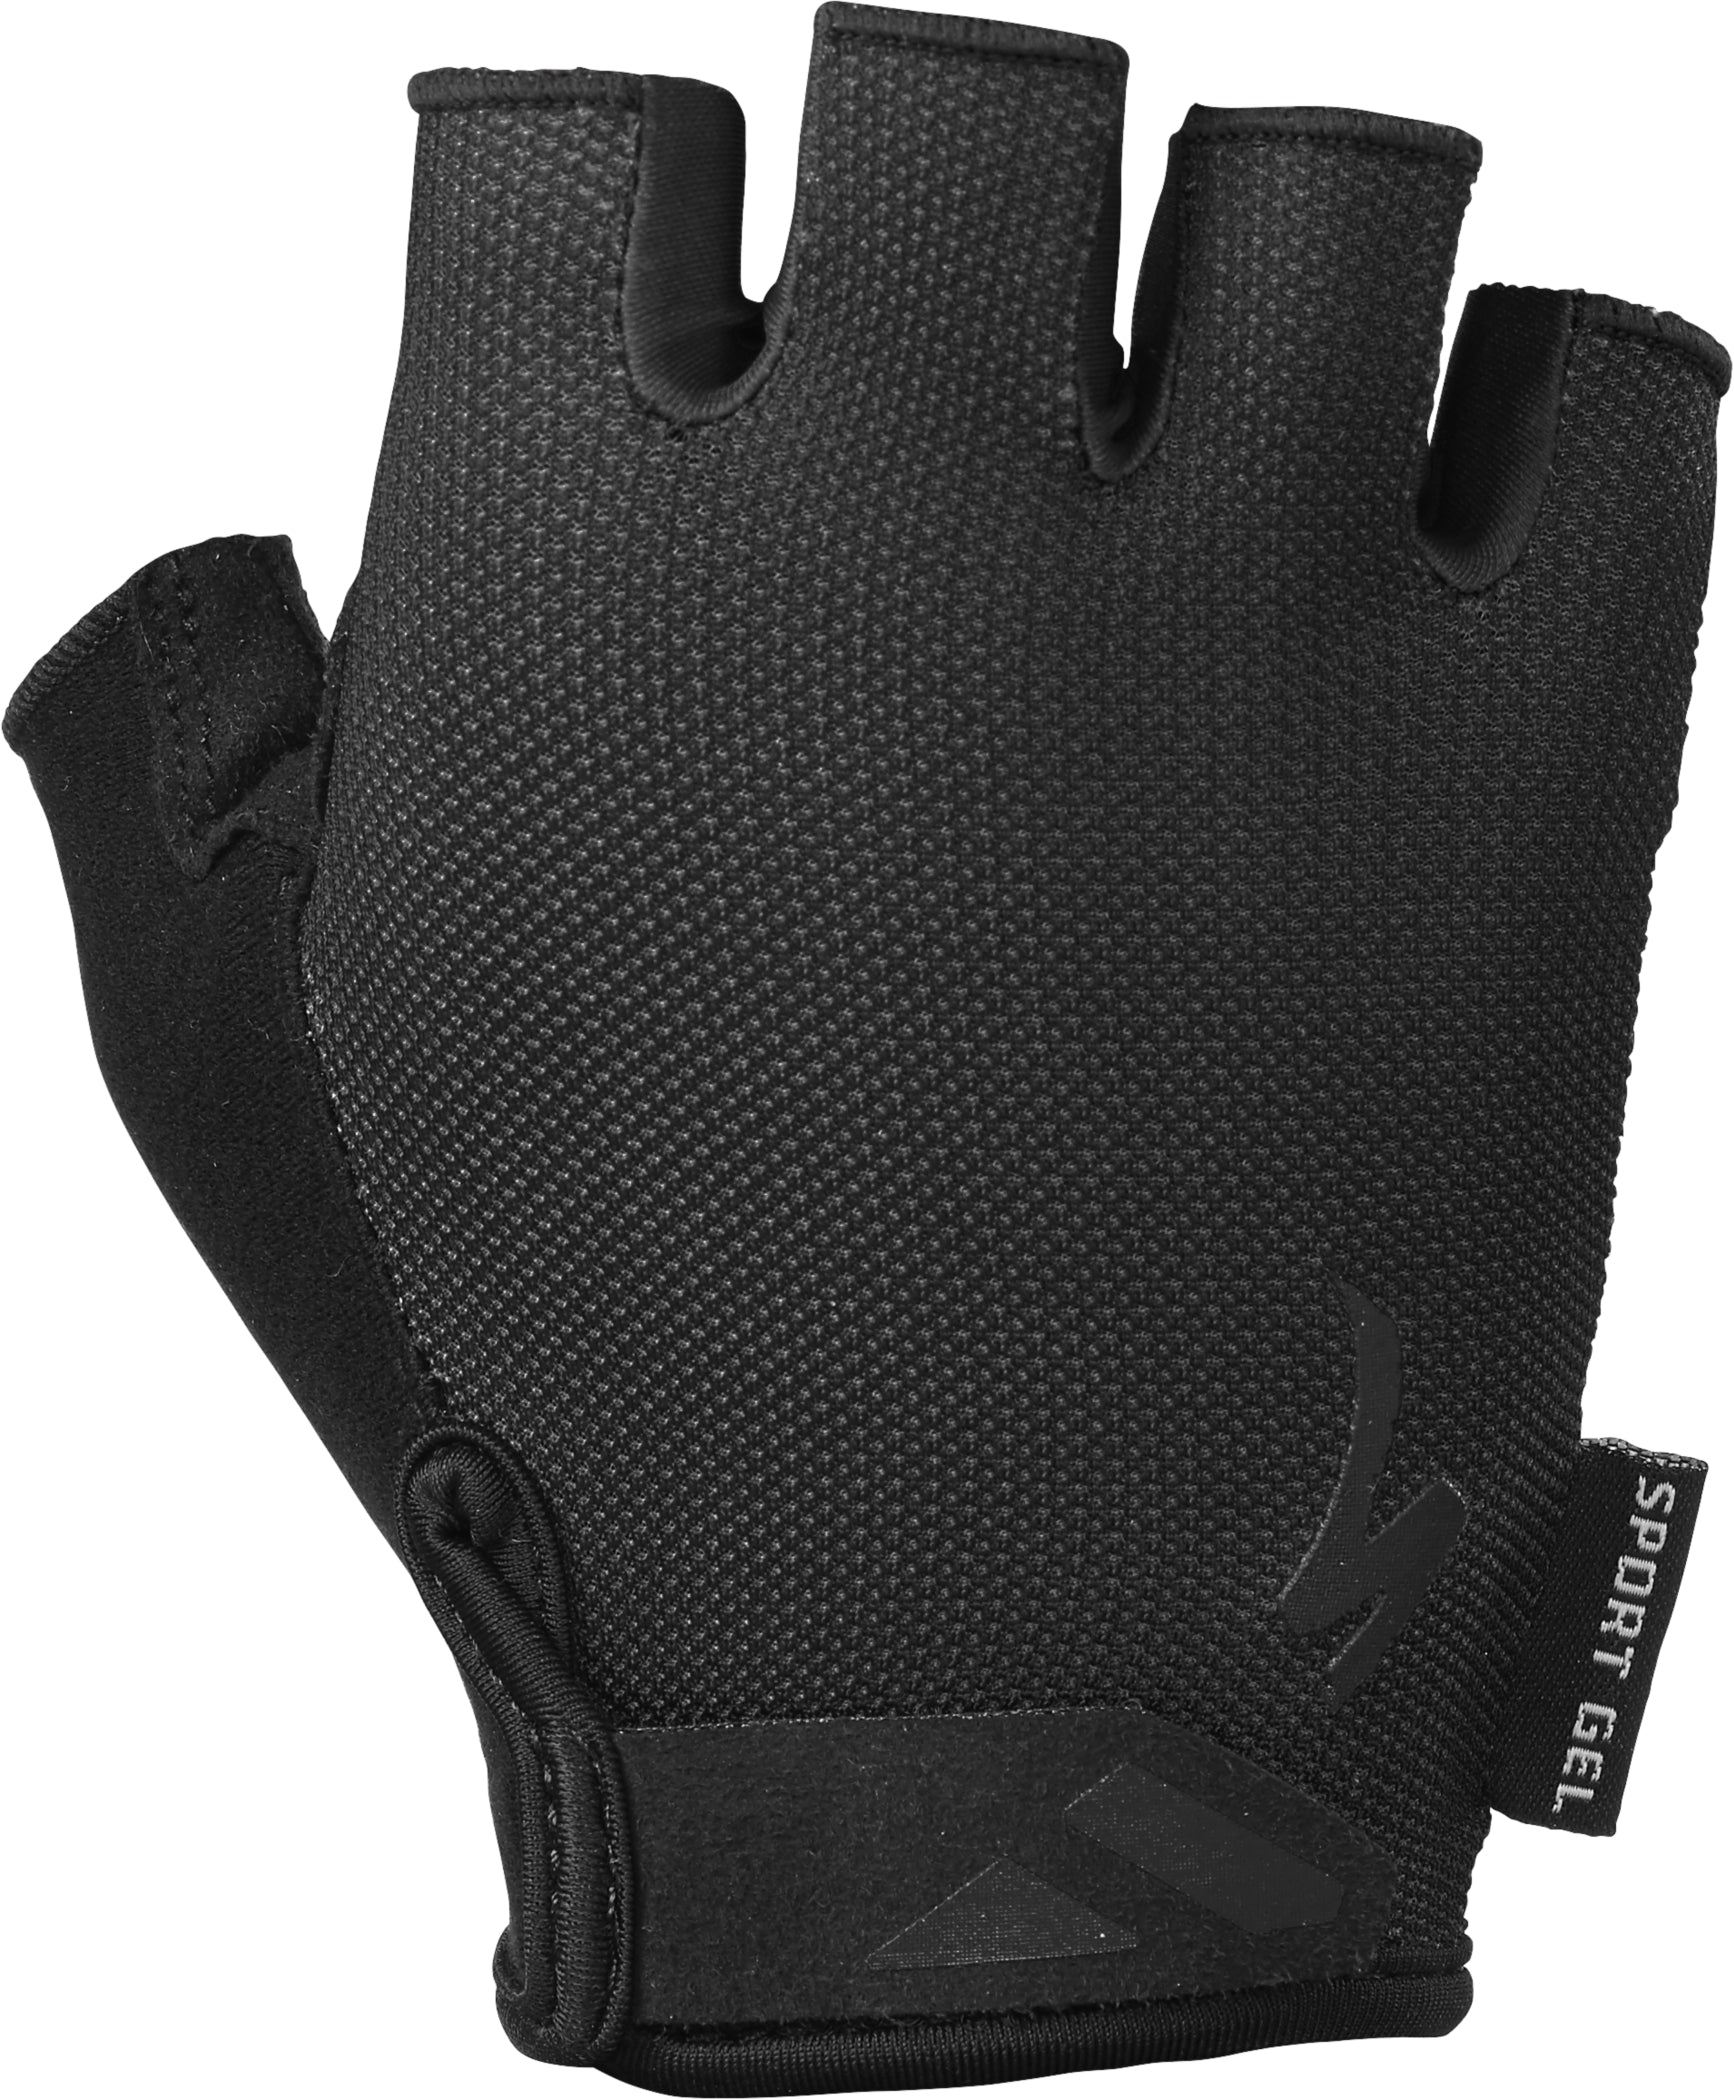 Women's Body Geometry Sport Gloves